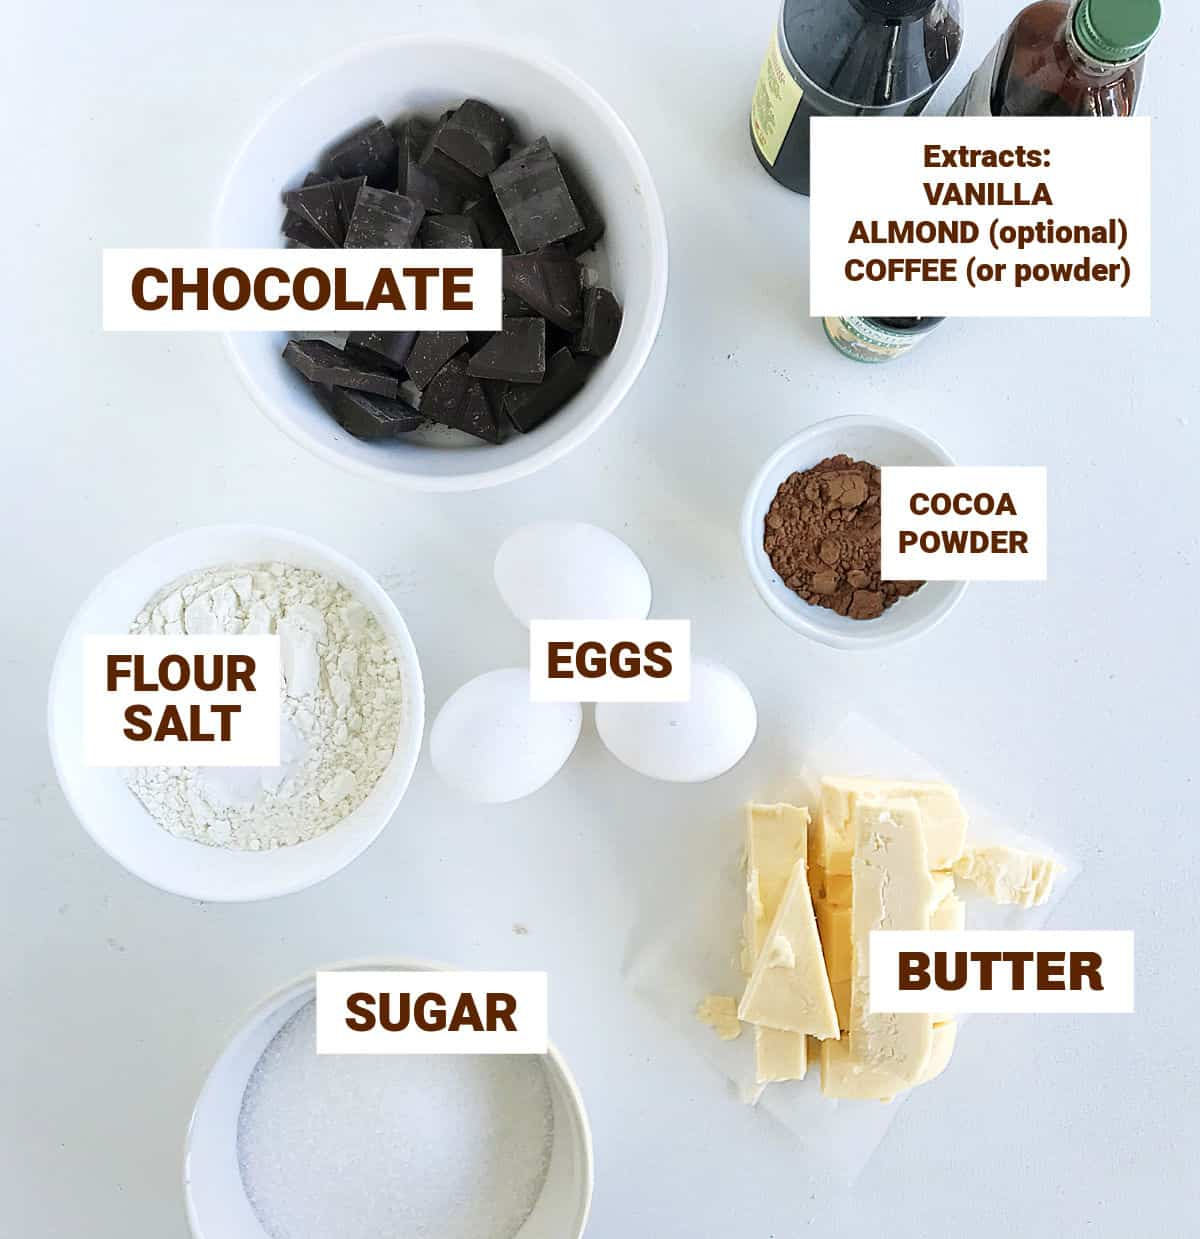 White surface with bowls containing brownie ingredients, like eggs, extract bottles, image with text